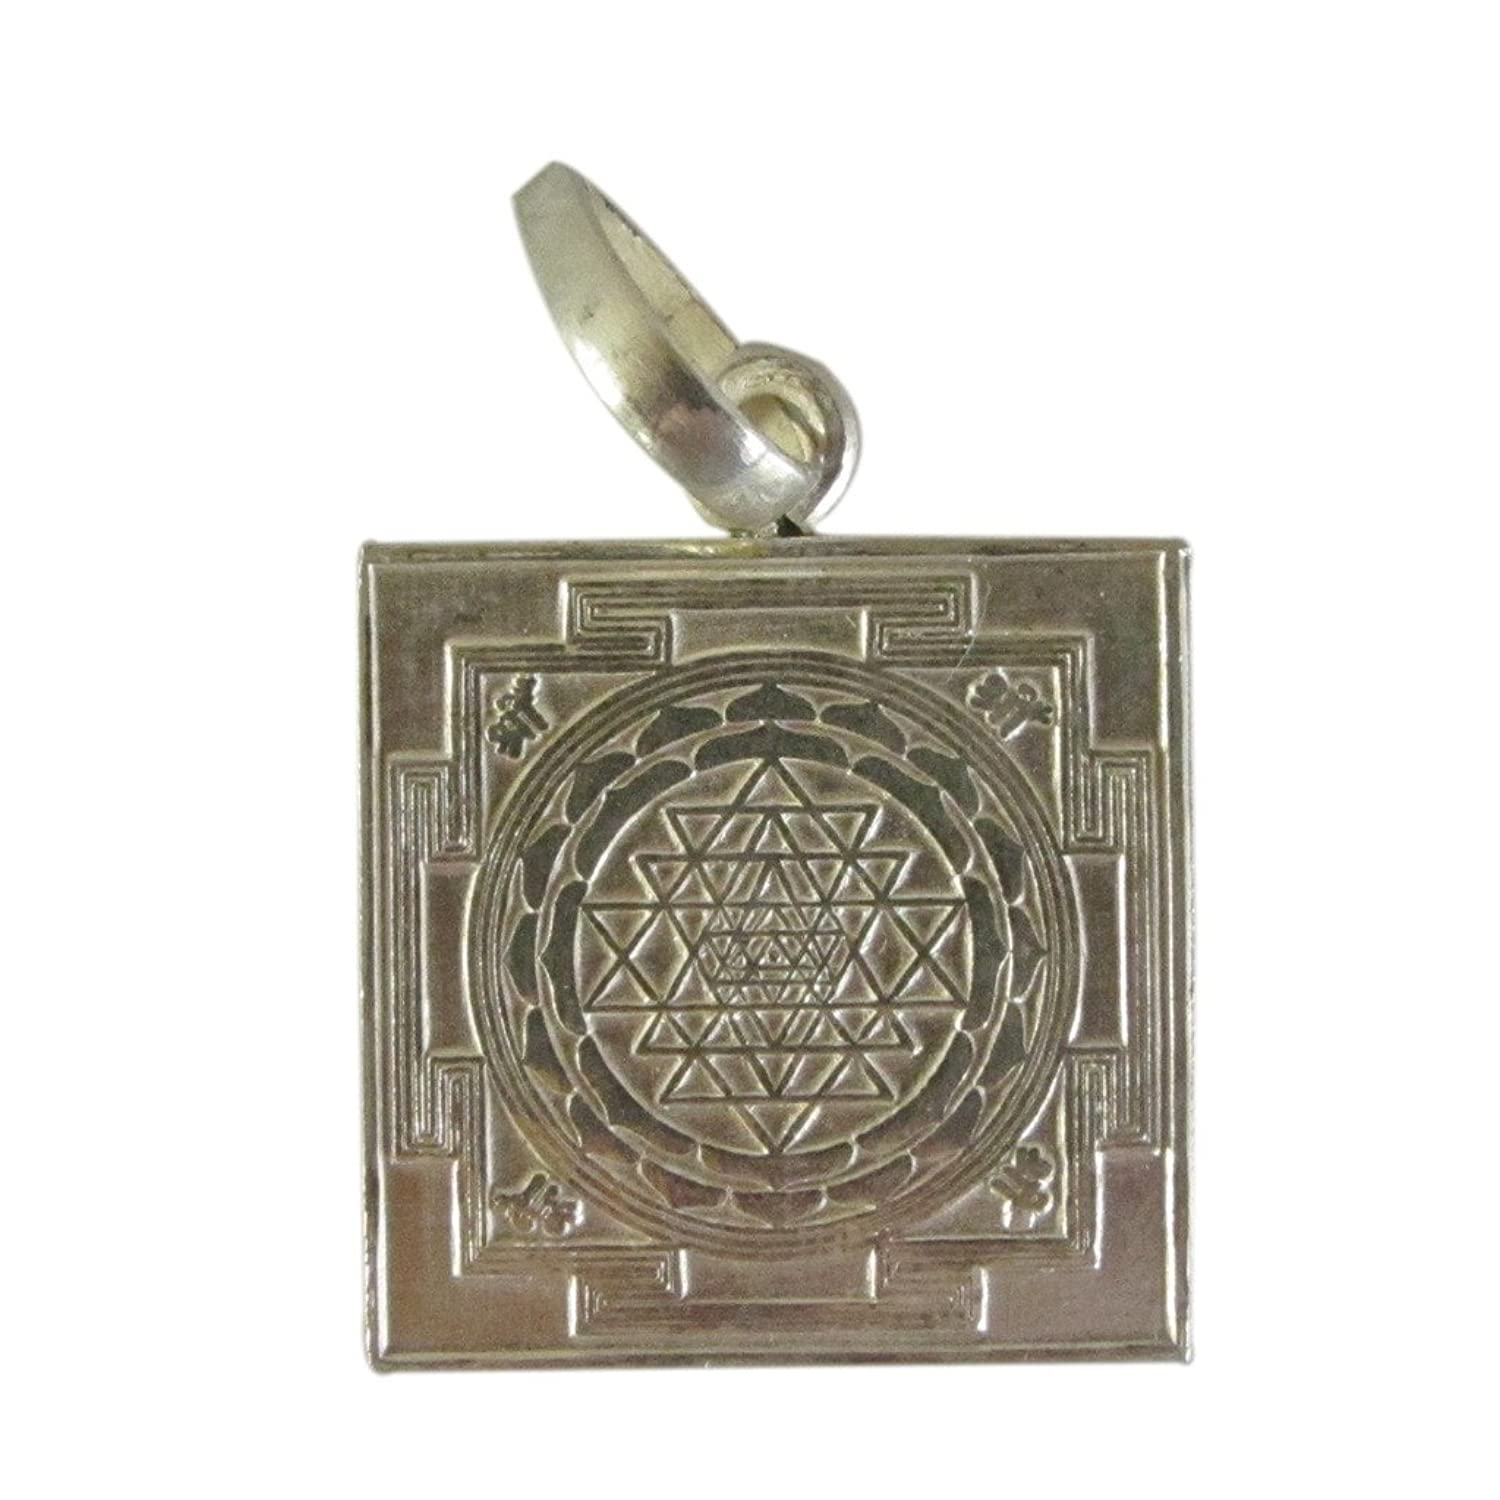 Buy galaxy gems ethnic silver shree yantra silver pendant for buy galaxy gems ethnic silver shree yantra silver pendant for unisex ssyp117 online at low prices in india amazon jewellery store amazon mozeypictures Images